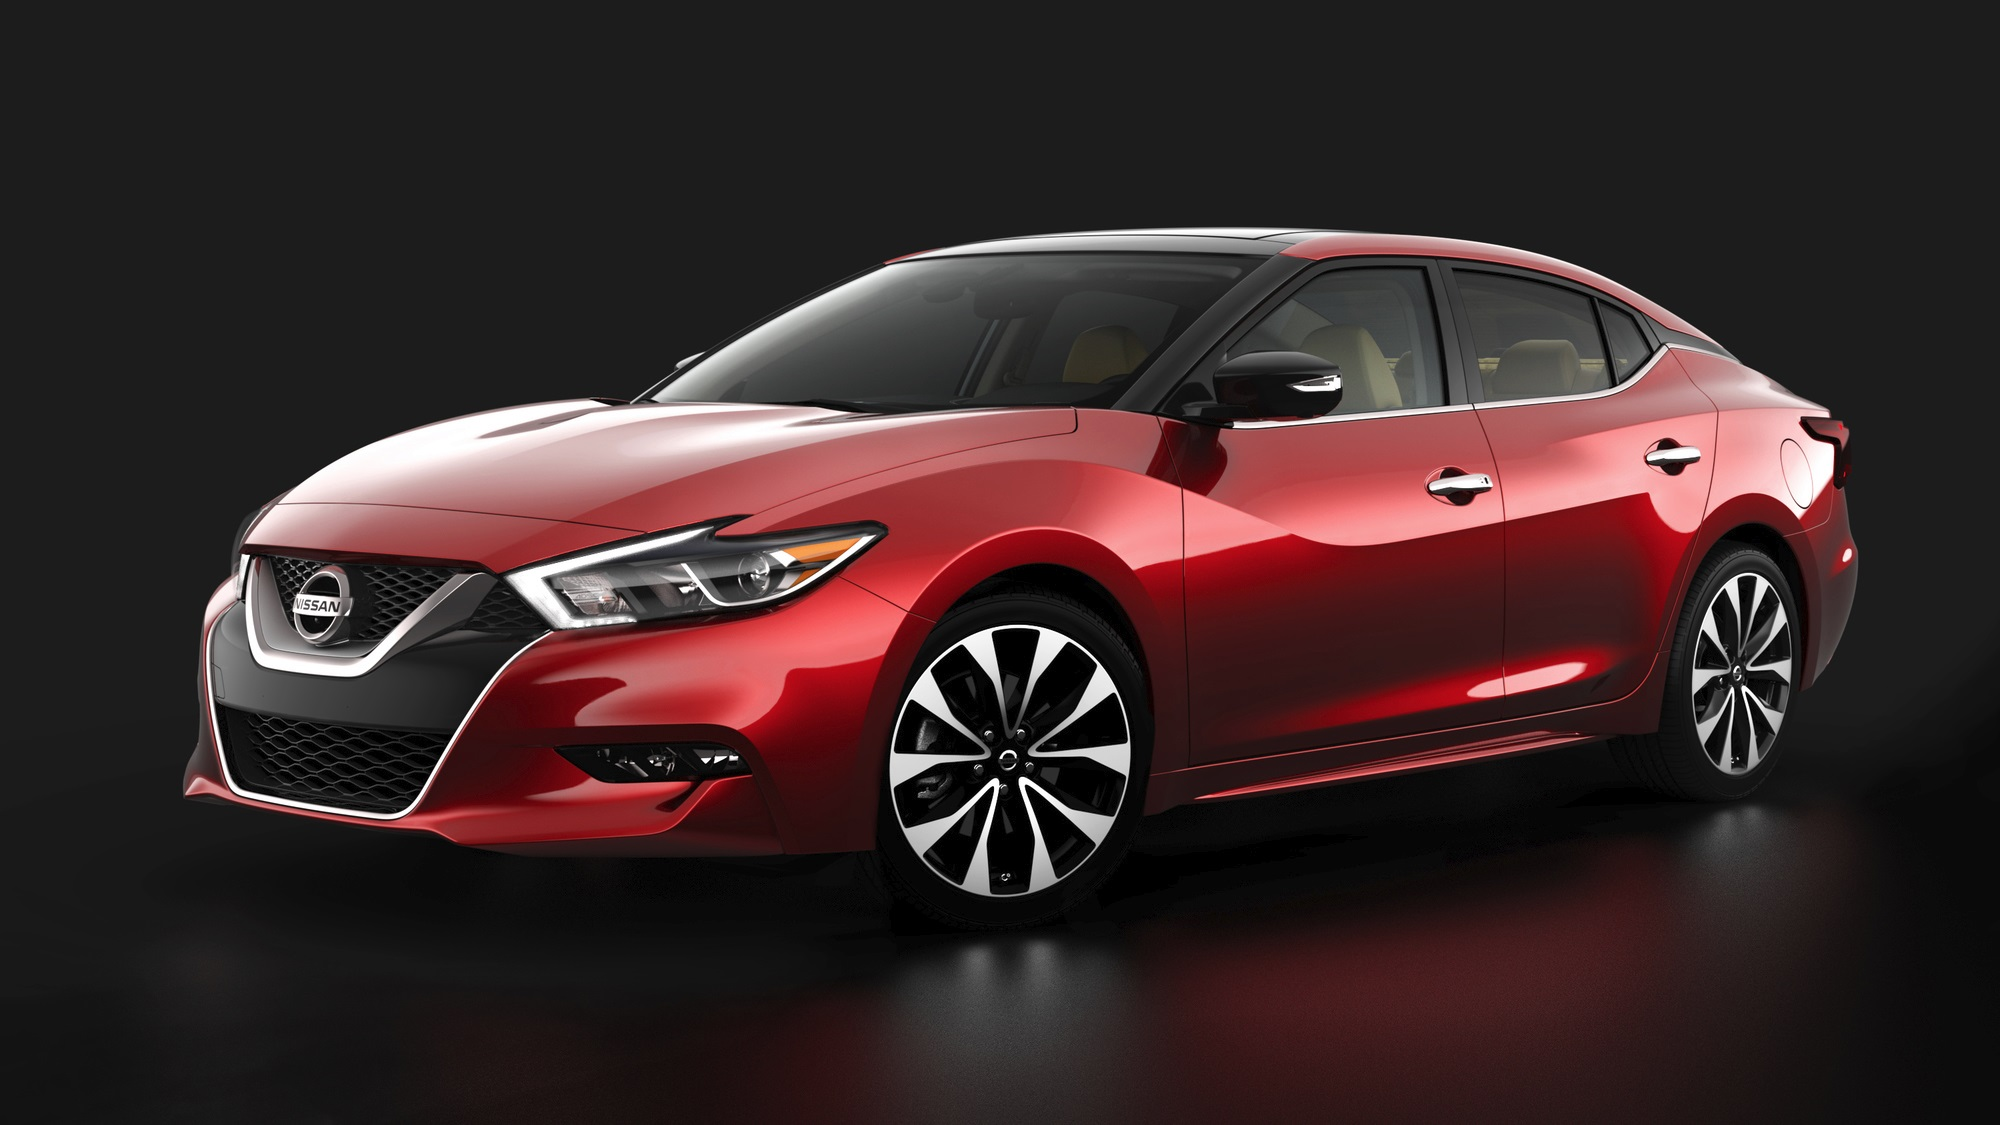 Nissan in Smyrna and Decherd to produce the NEW Maxima